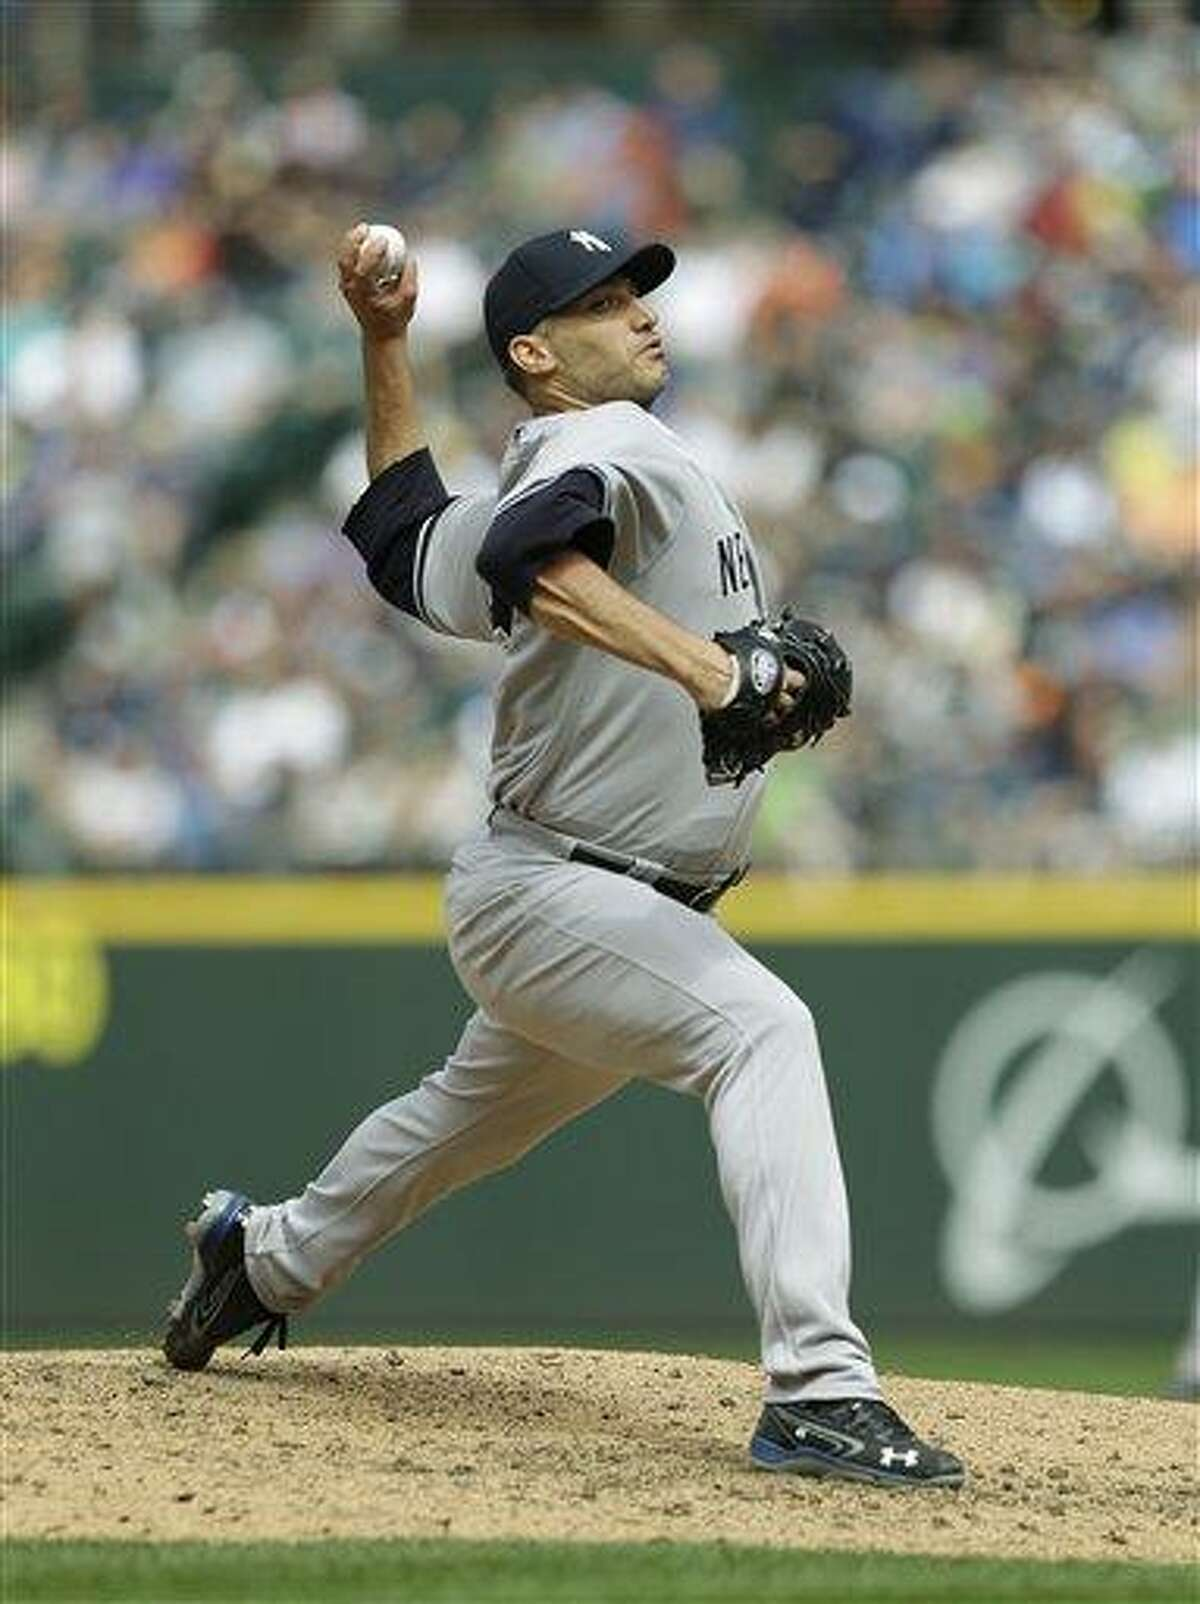 New York Yankees pitcher Andy Pettitte throws during a baseball game against the Seattle Mariners, Saturday, June 8, 2013, in Seattle. (AP Photo/Ted S. Warren)